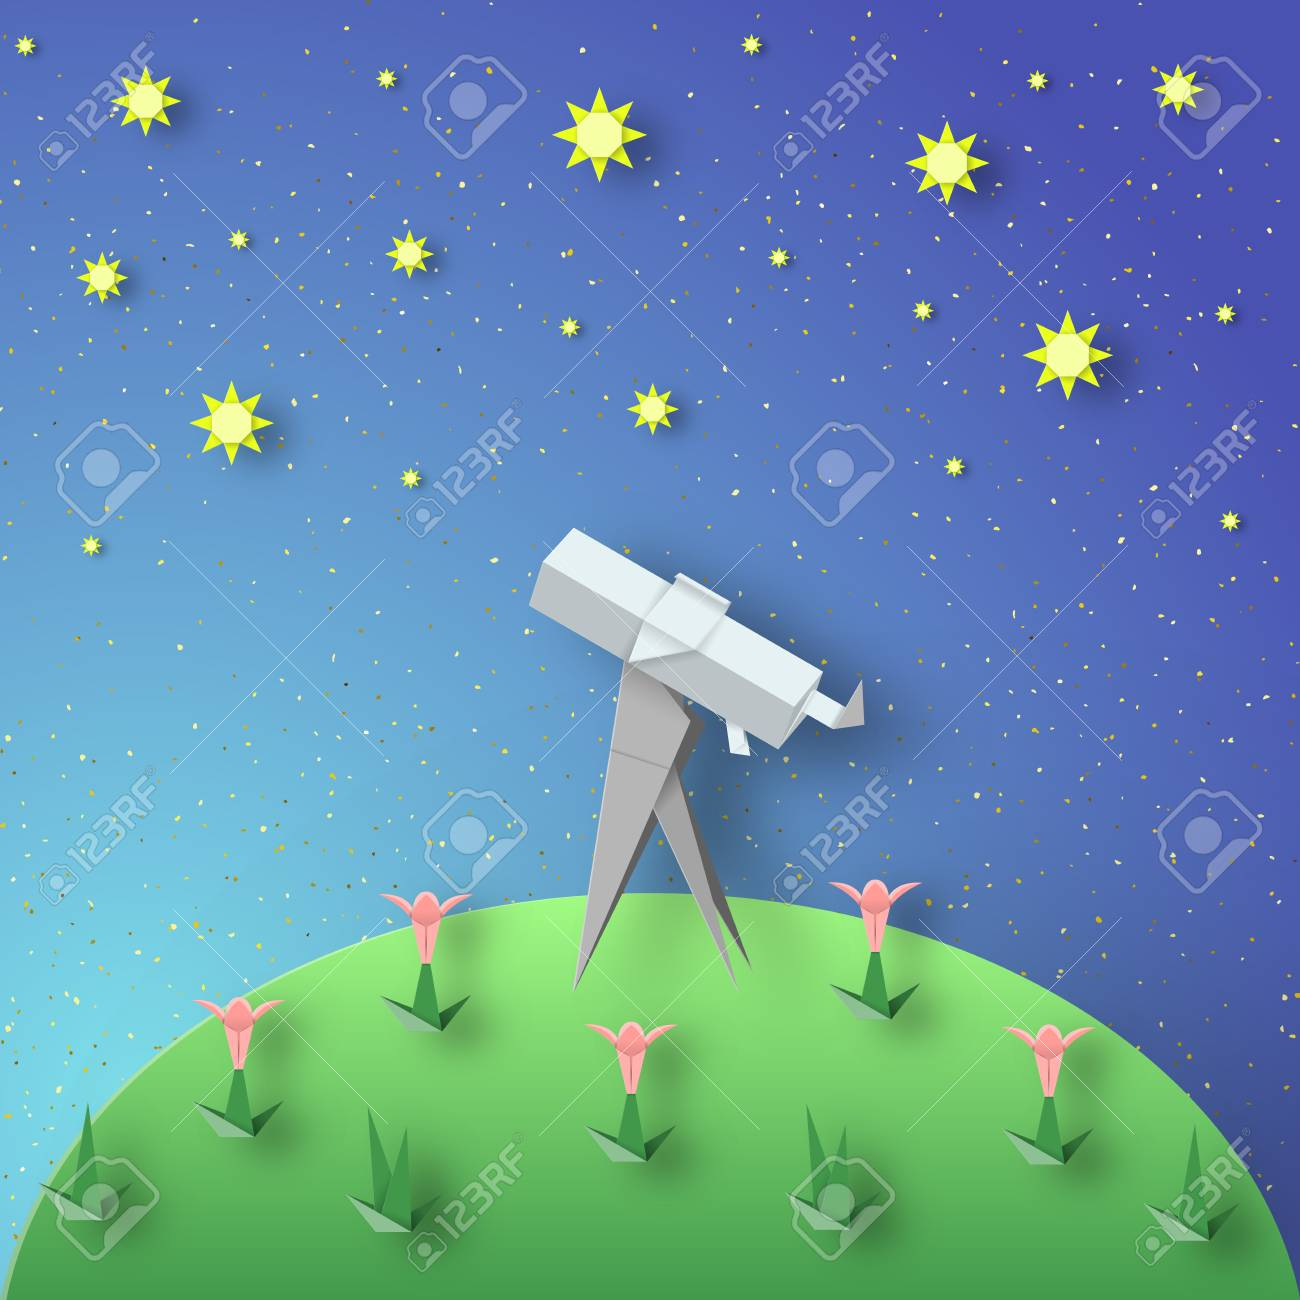 Paper Origami Abstract Concept Applique Scene With Cut Telescope And Stars Stock Vector